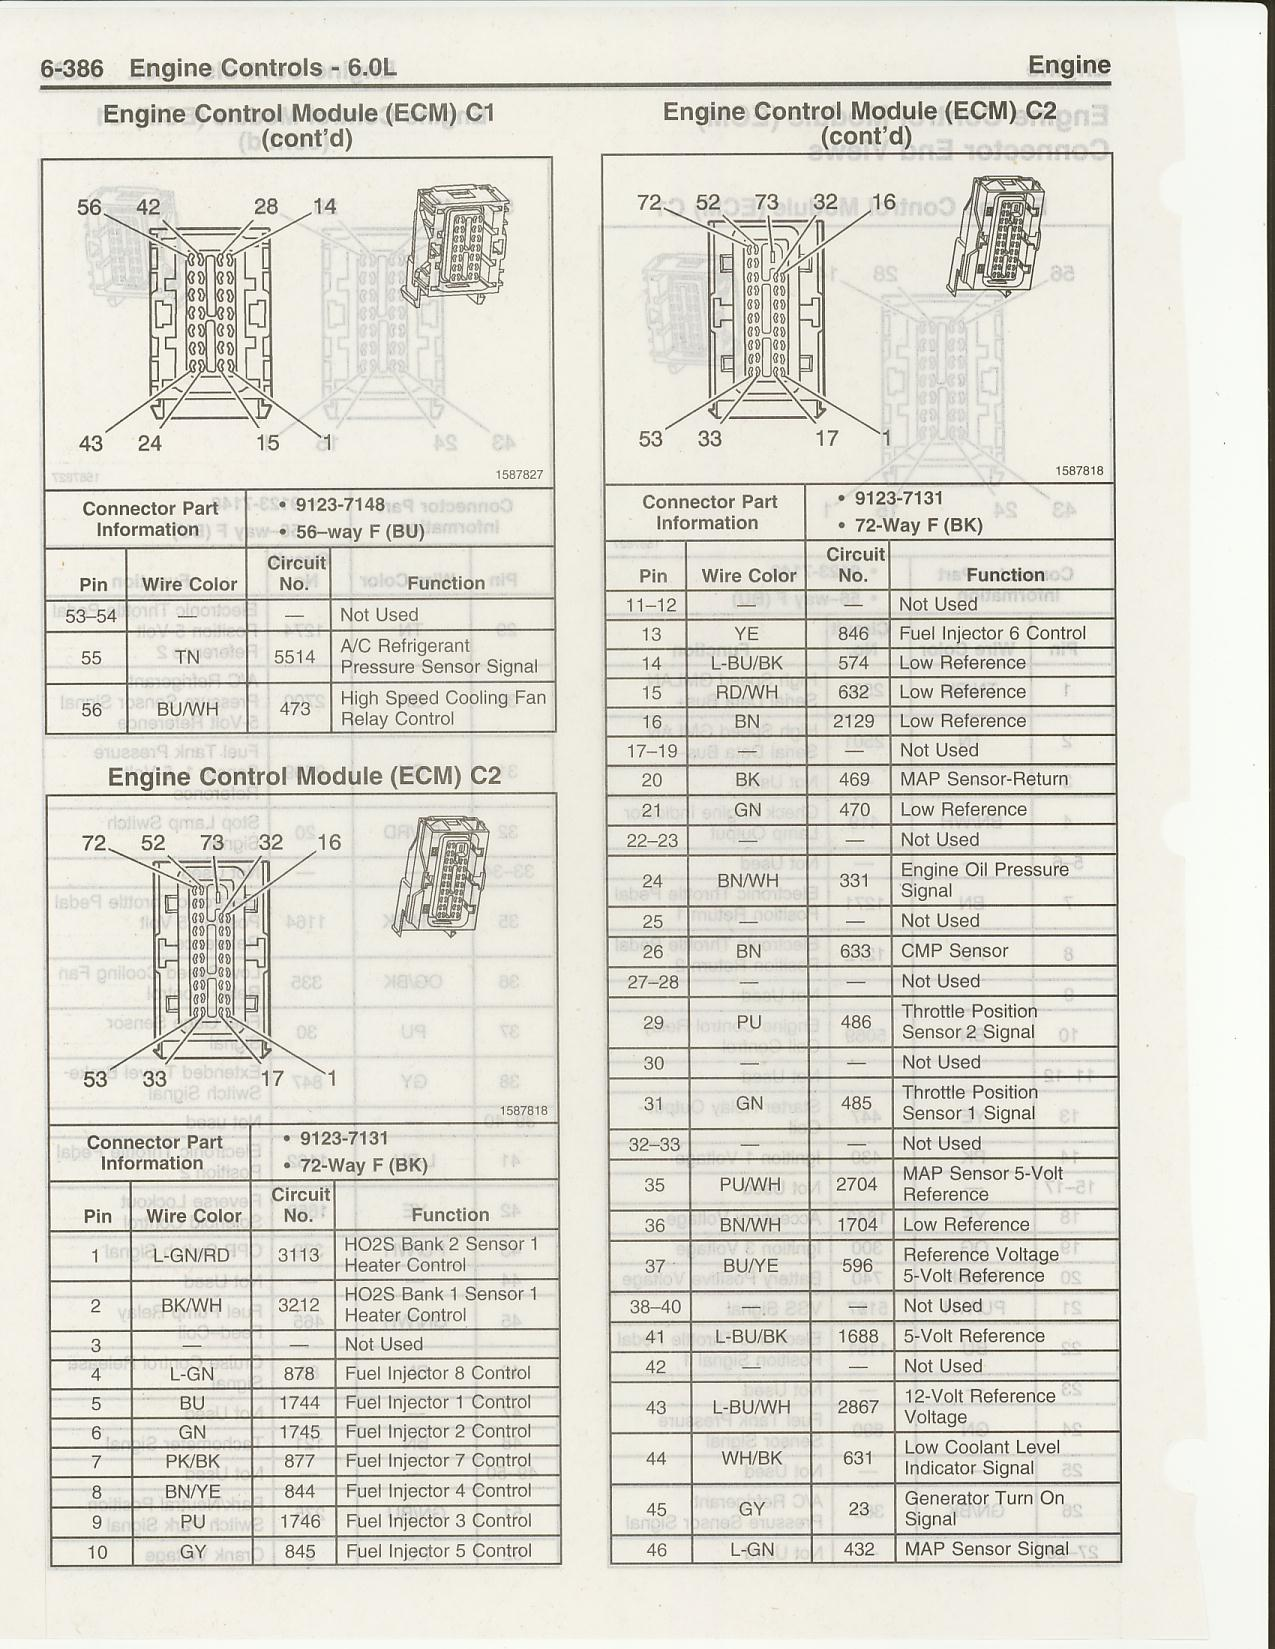 enginecontrols08 pinouts and wiring diagrams page 5 ls1tech camaro and 6l80e trans modules wiring diagram at gsmx.co